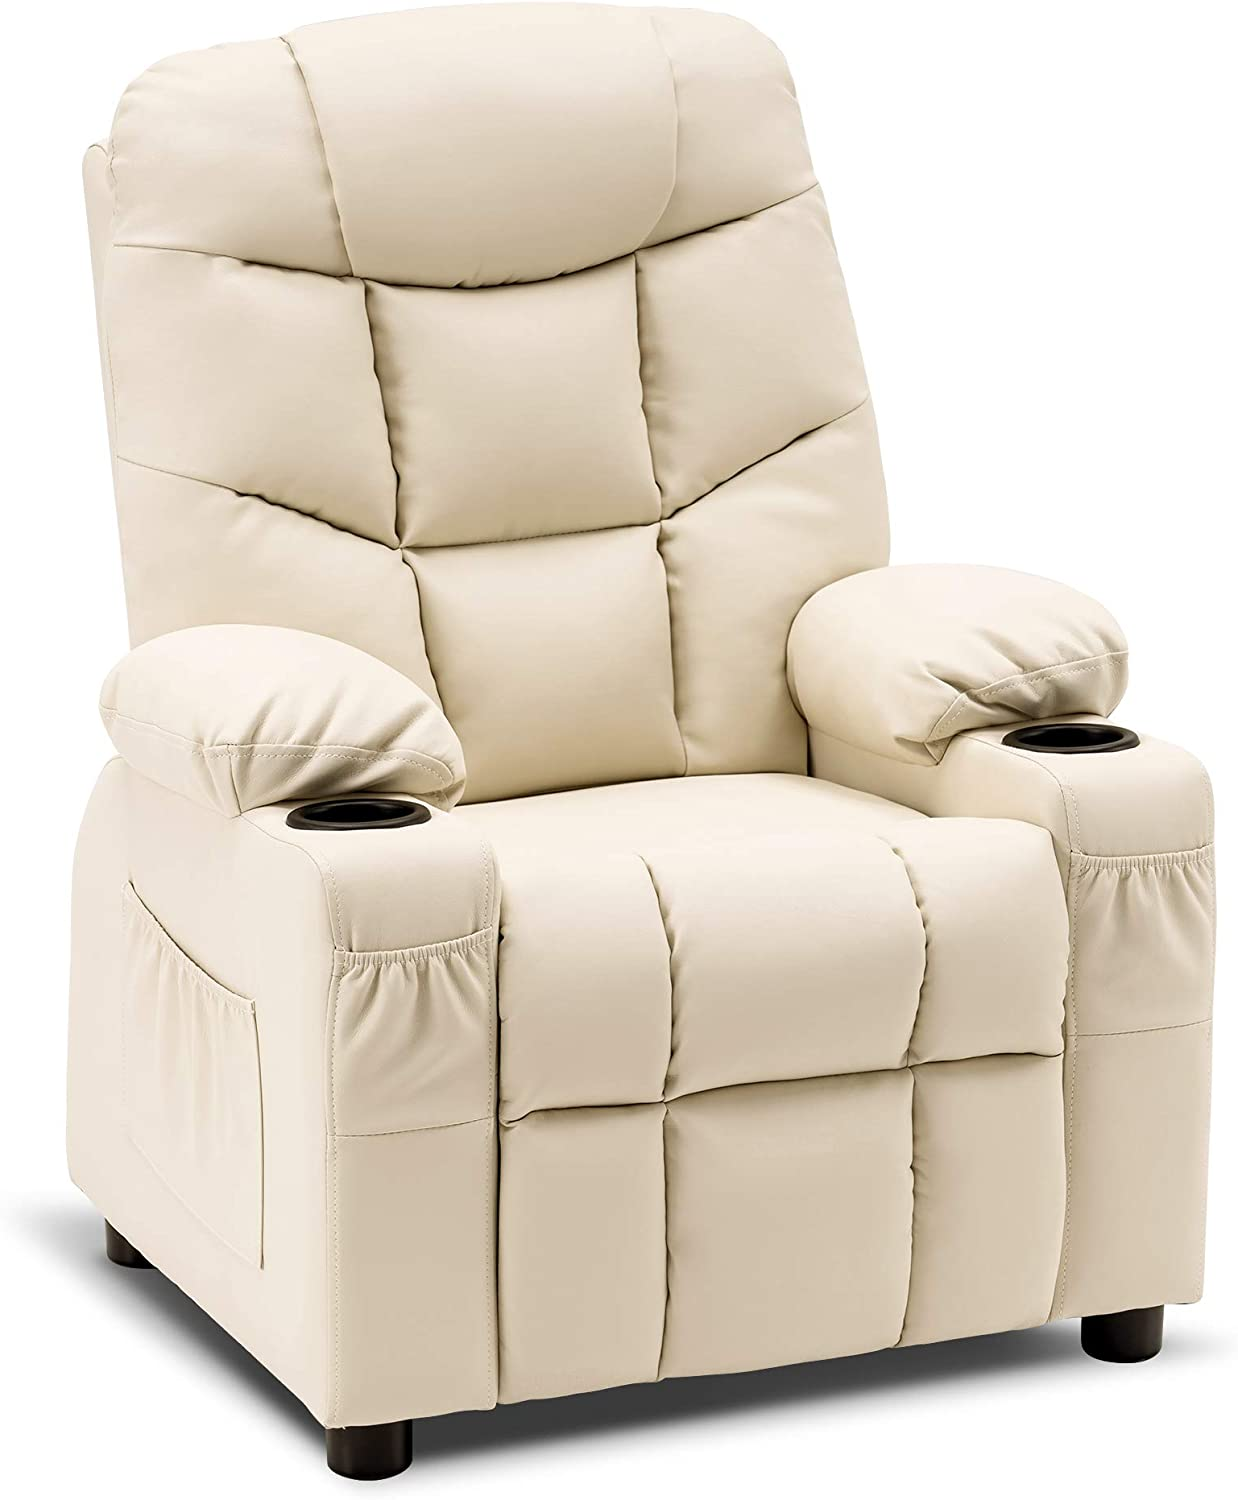 Mcombo Big Kids Recliner Chair with Cup Holders for Boys and Girls Room, 2 Side Pockets, 3+ Age Group,Faux Leather 7366 (Cream White)